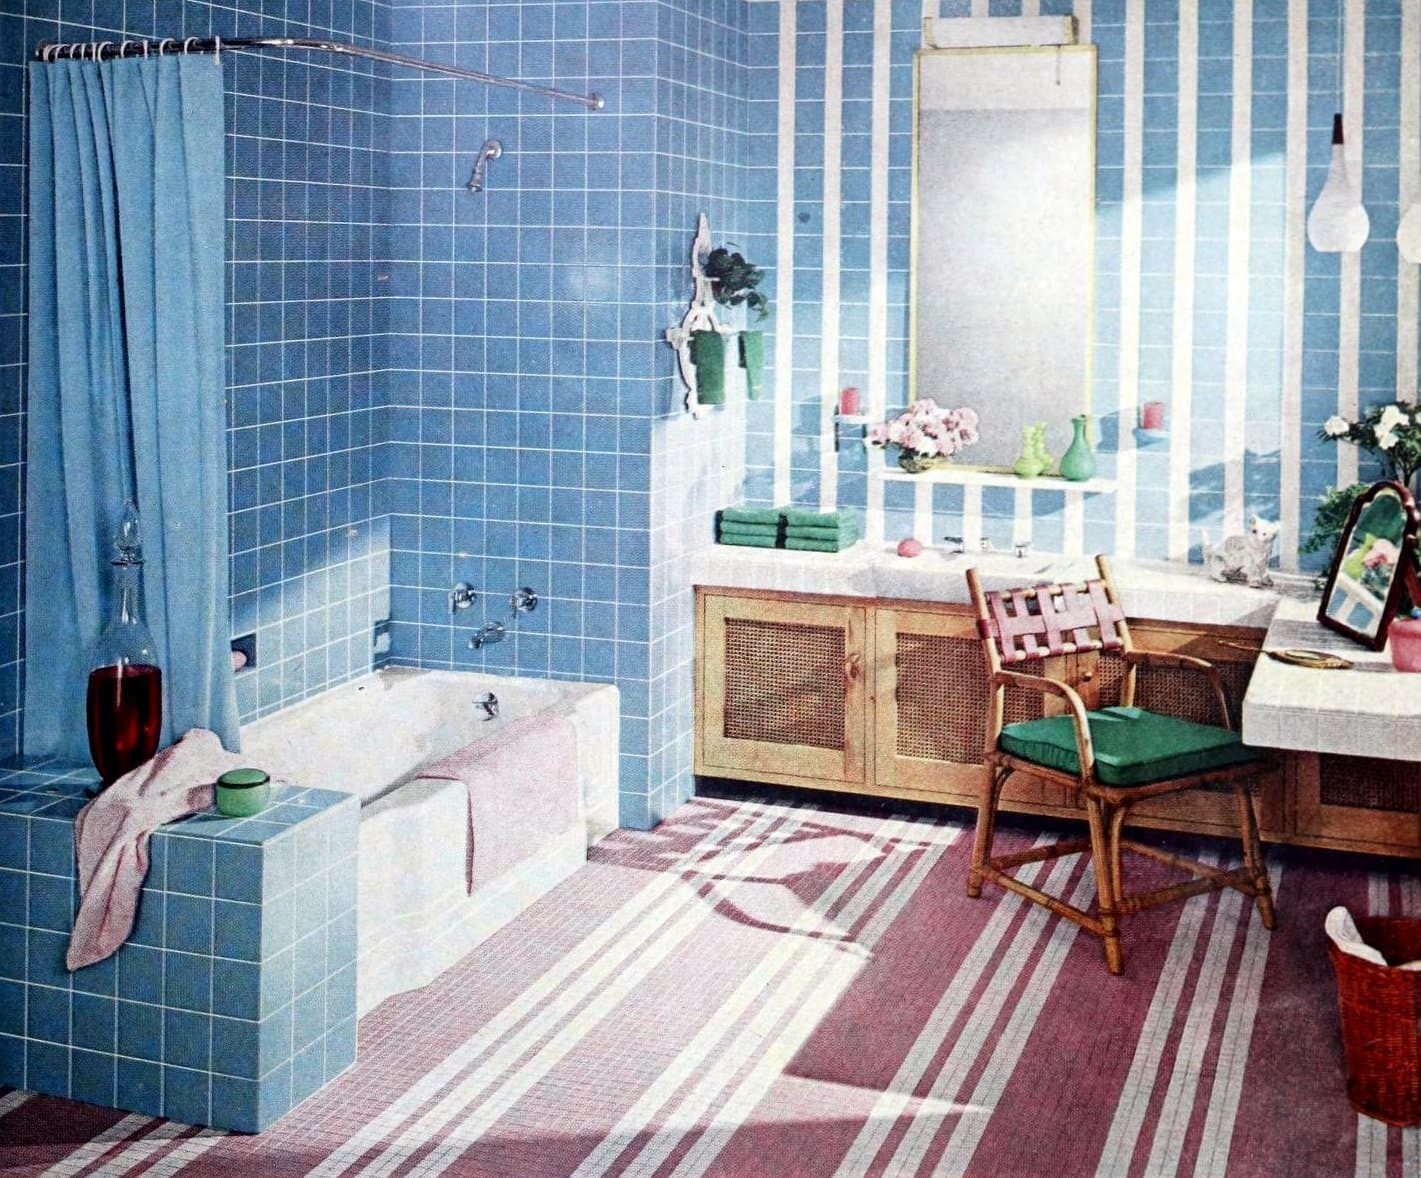 Blue and pink tiled bathroom decorating from the late fifties